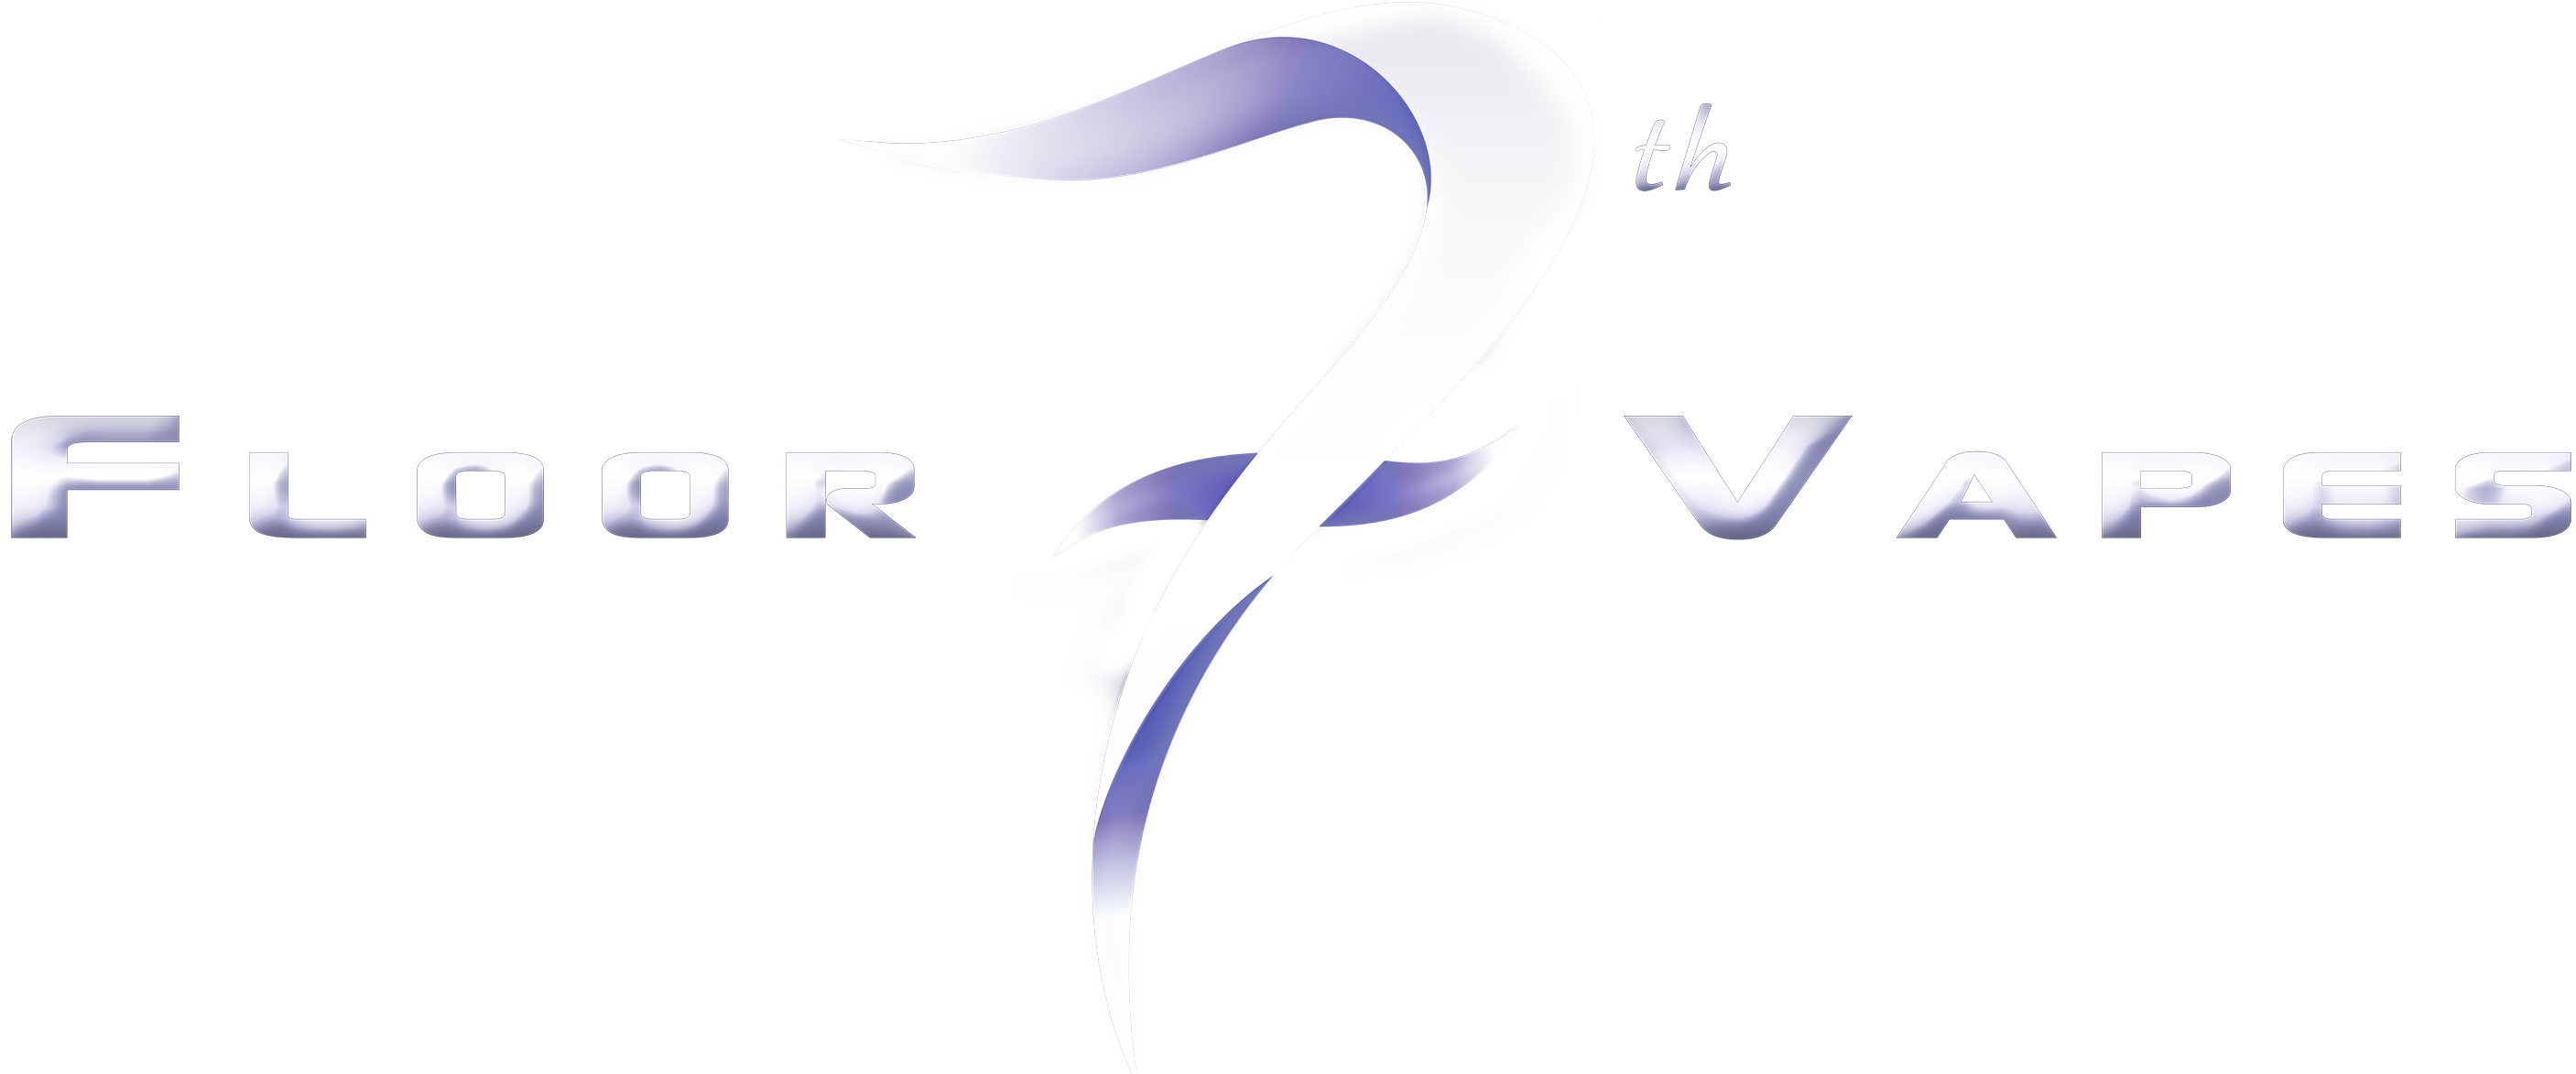 7th-logo-edit.png